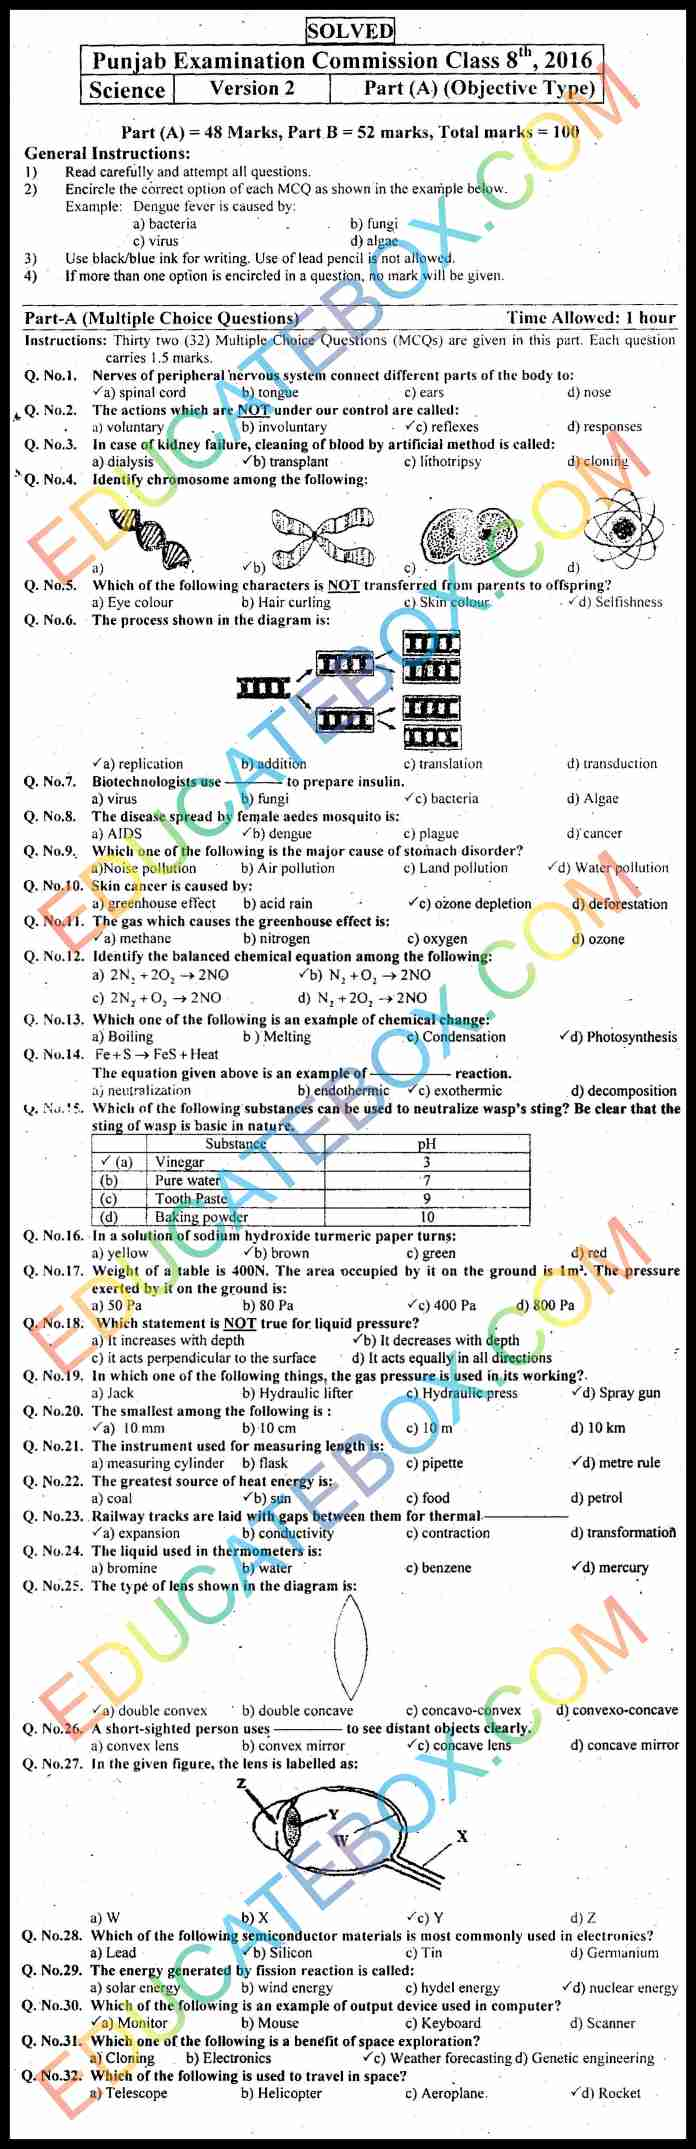 Past Paper 8th Class Science 2016 Solved Paper (English Medium) Punjab Board (PEC) Objective Type Version 2